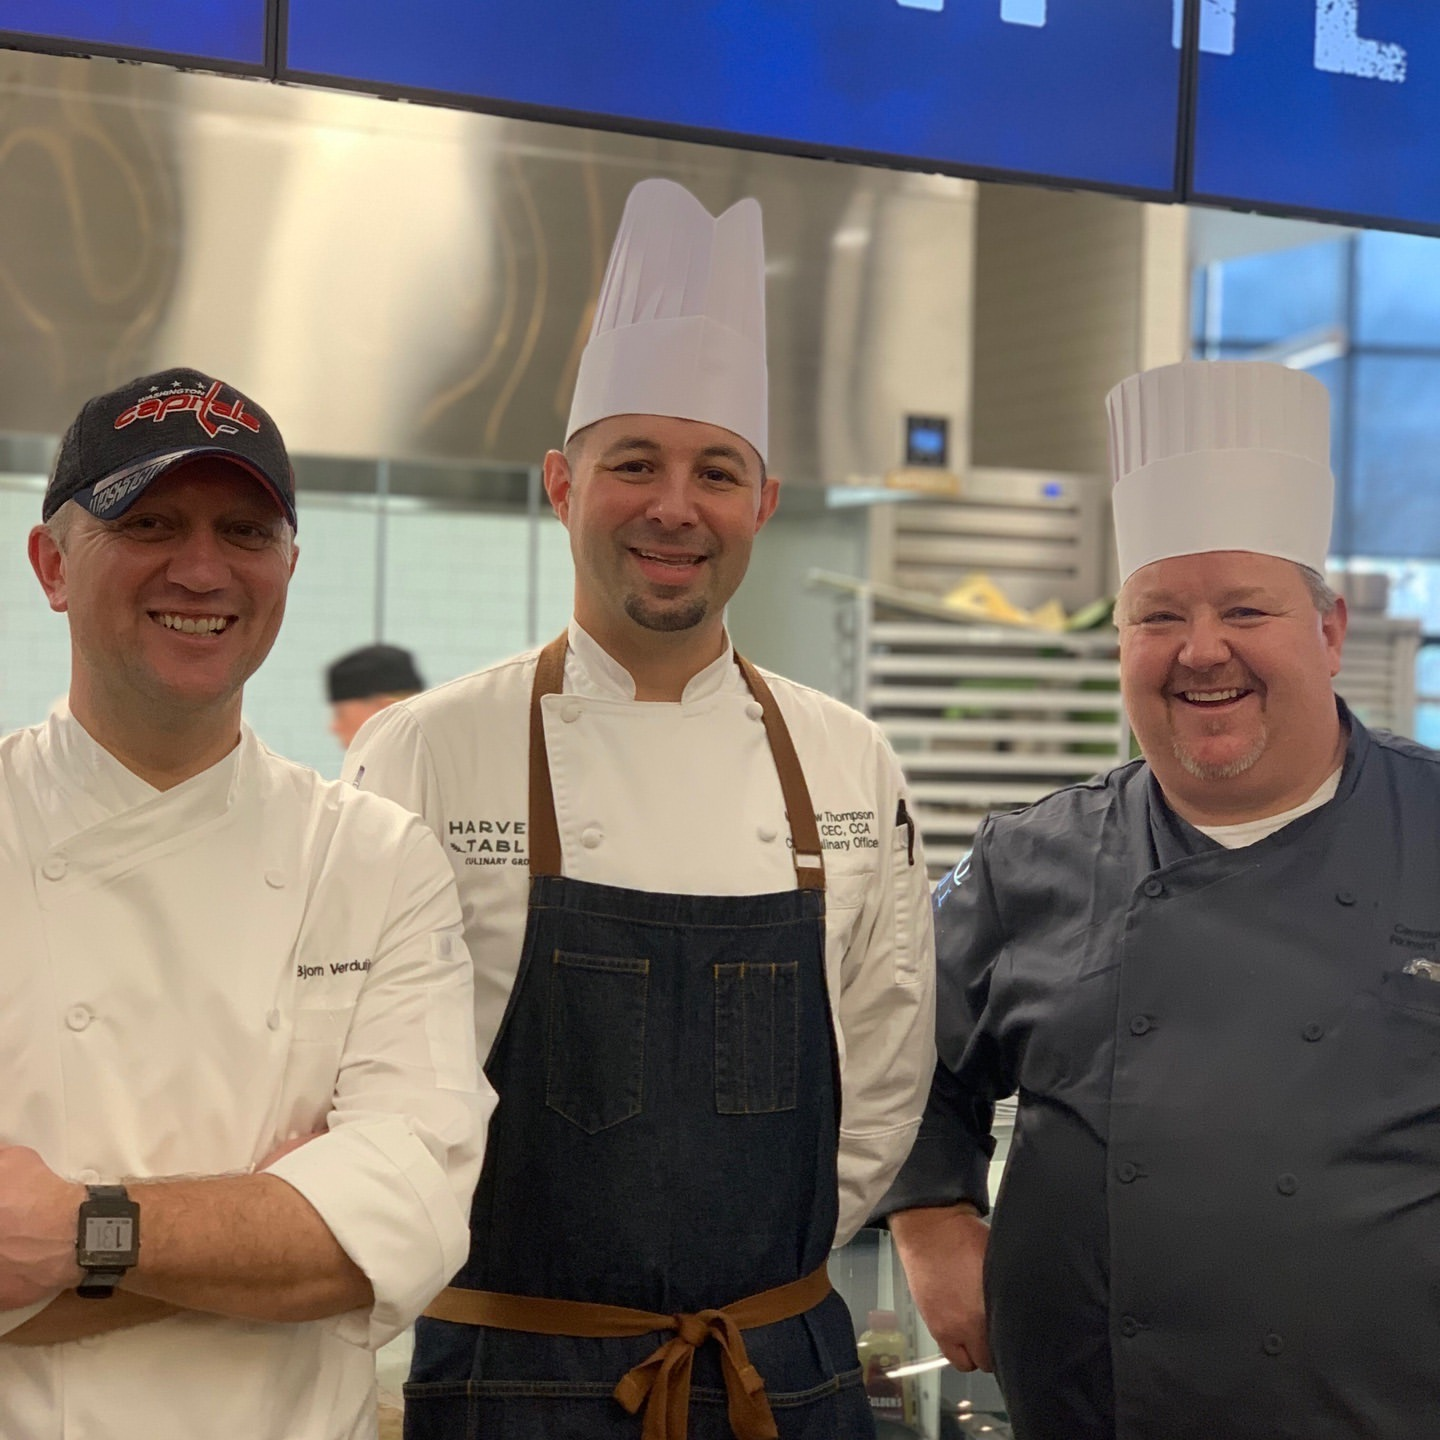 Chefs Bjorn Verduijn, Matthew Thompson, & Richard Hetzler